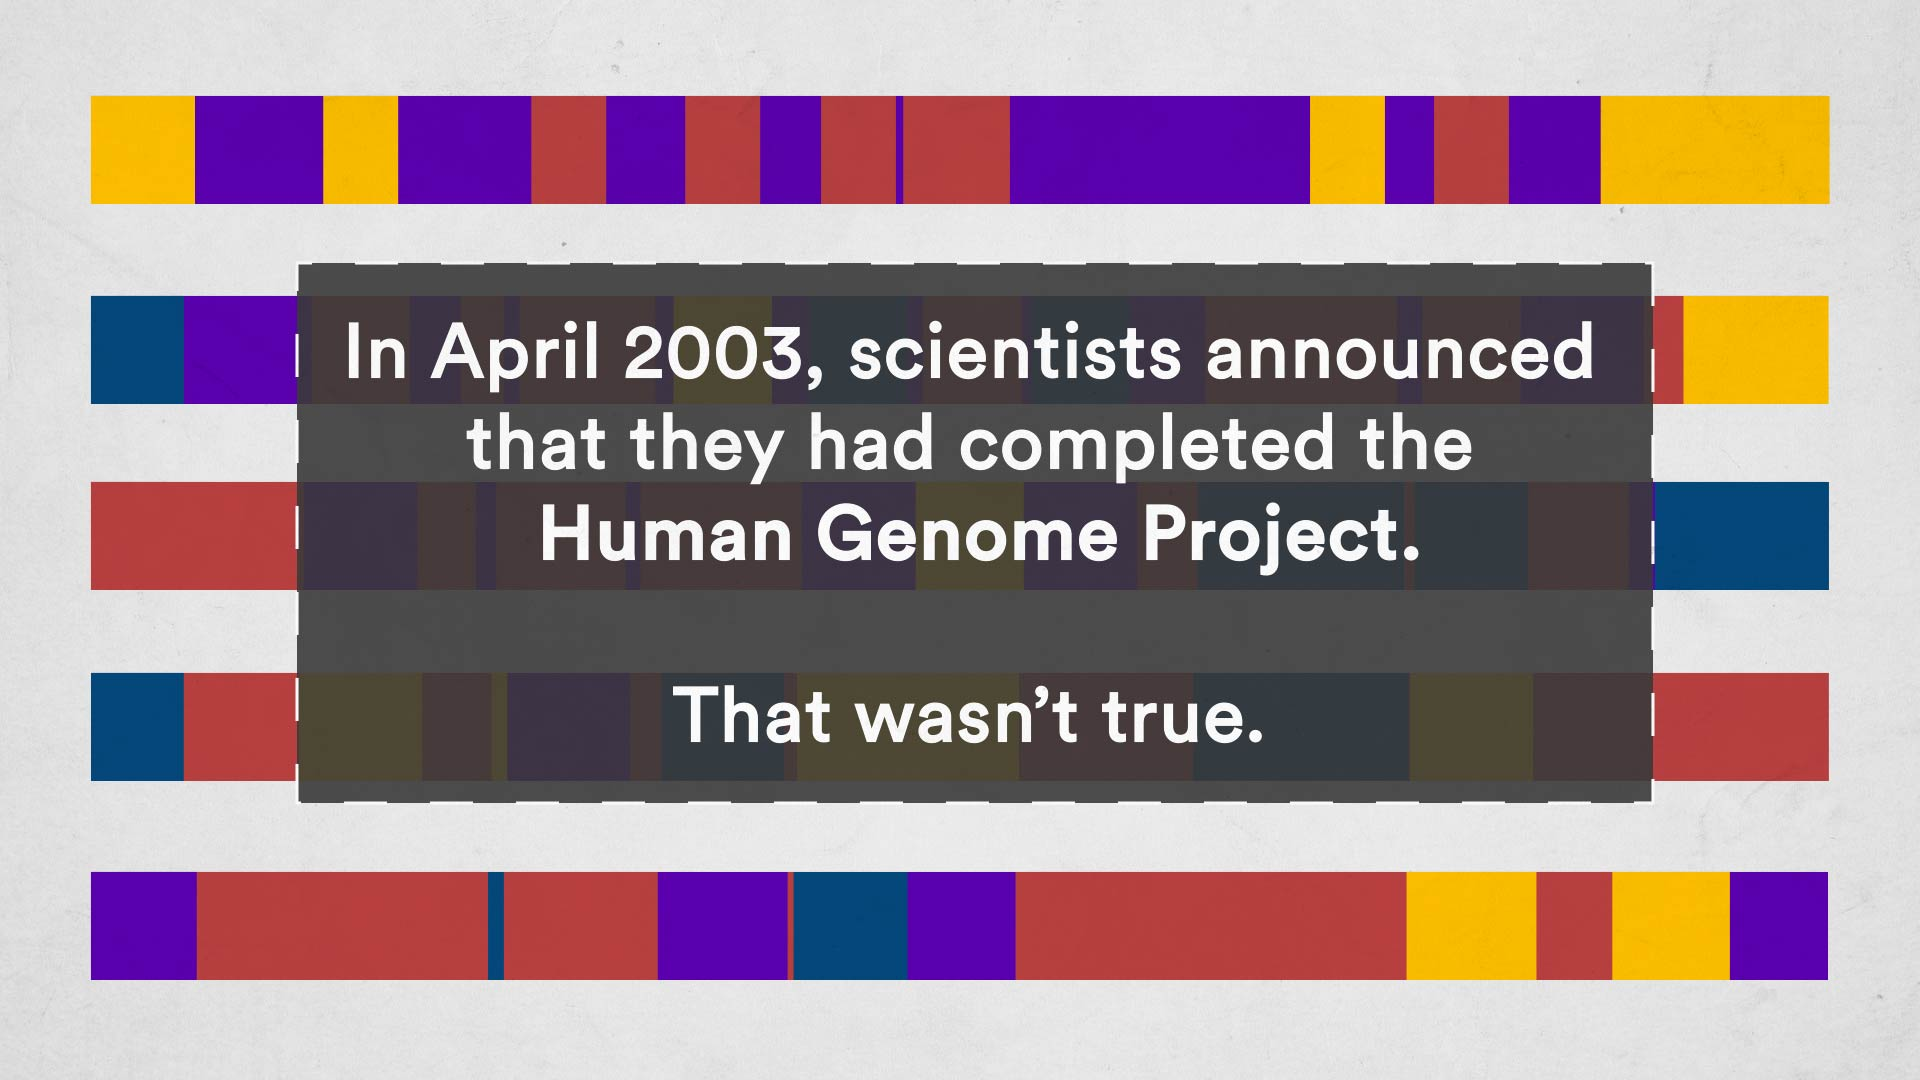 Psst, the human genome was never completely sequenced. Some scientists say it should be